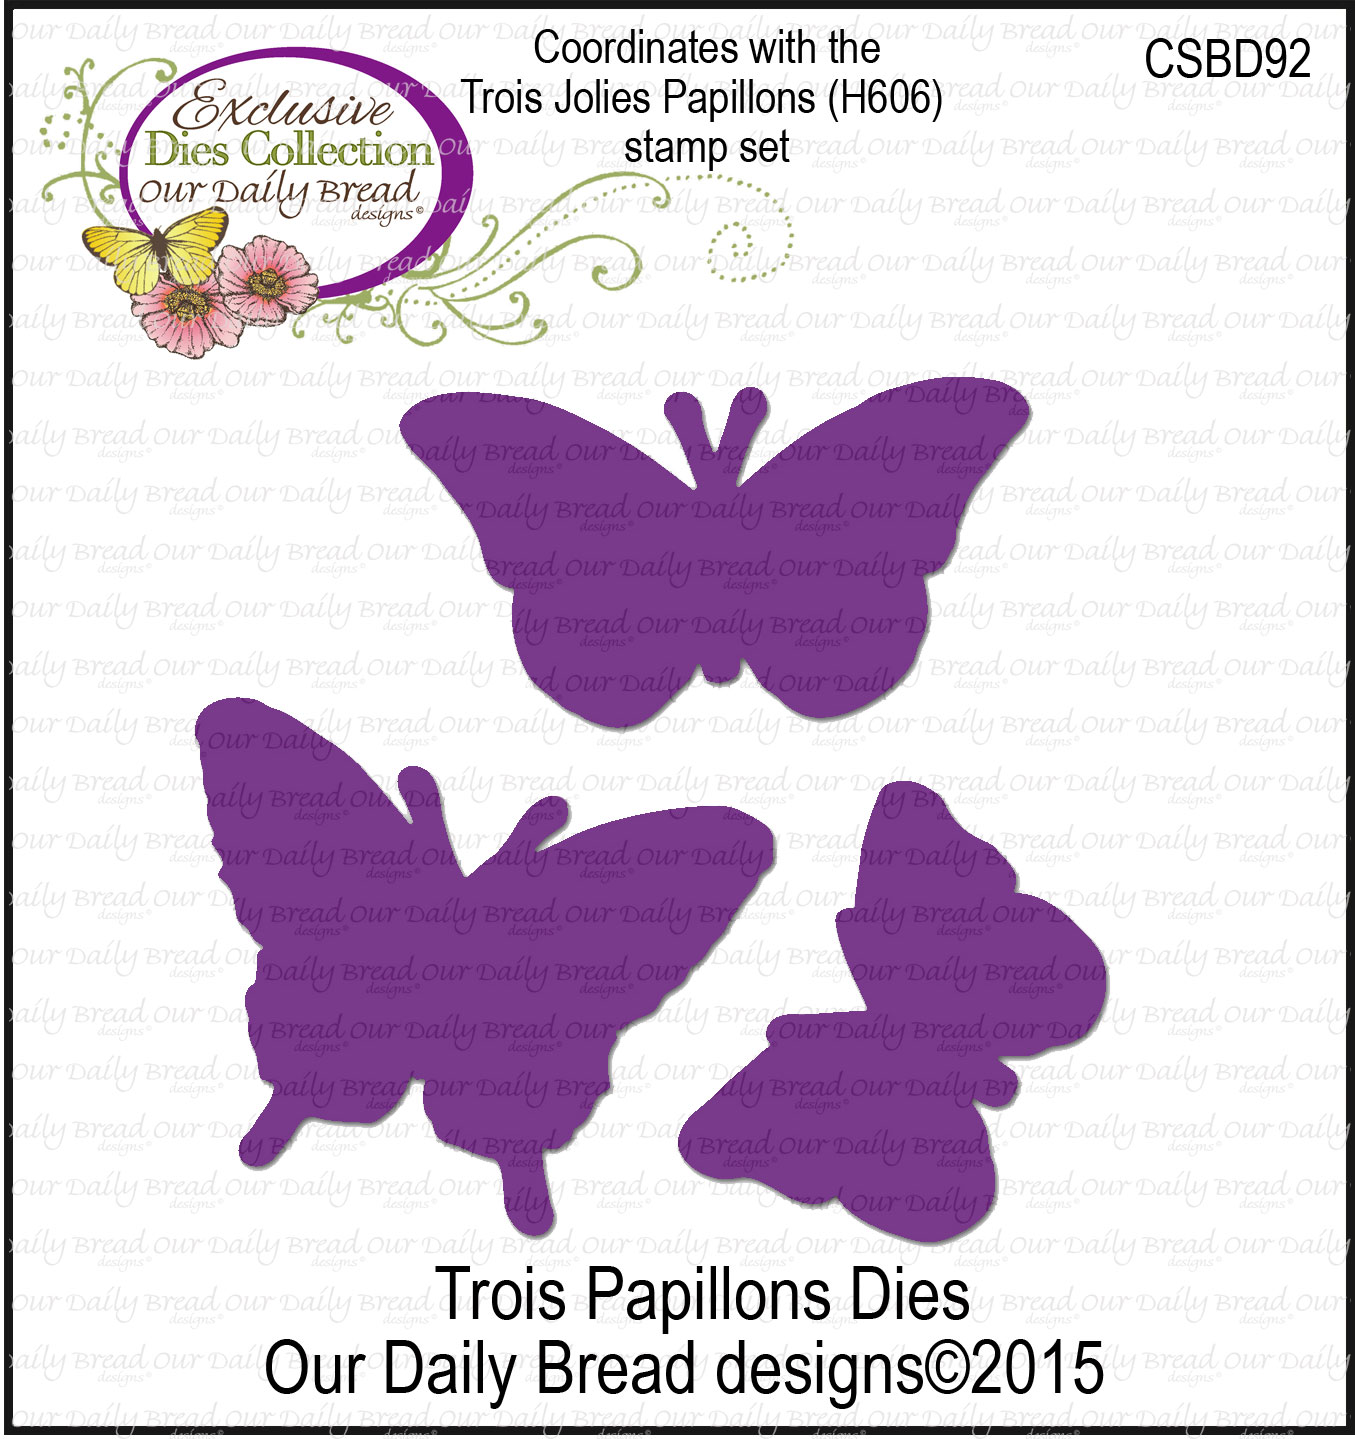 Our Daily Bread Designs Custom Trois Papillons Dies